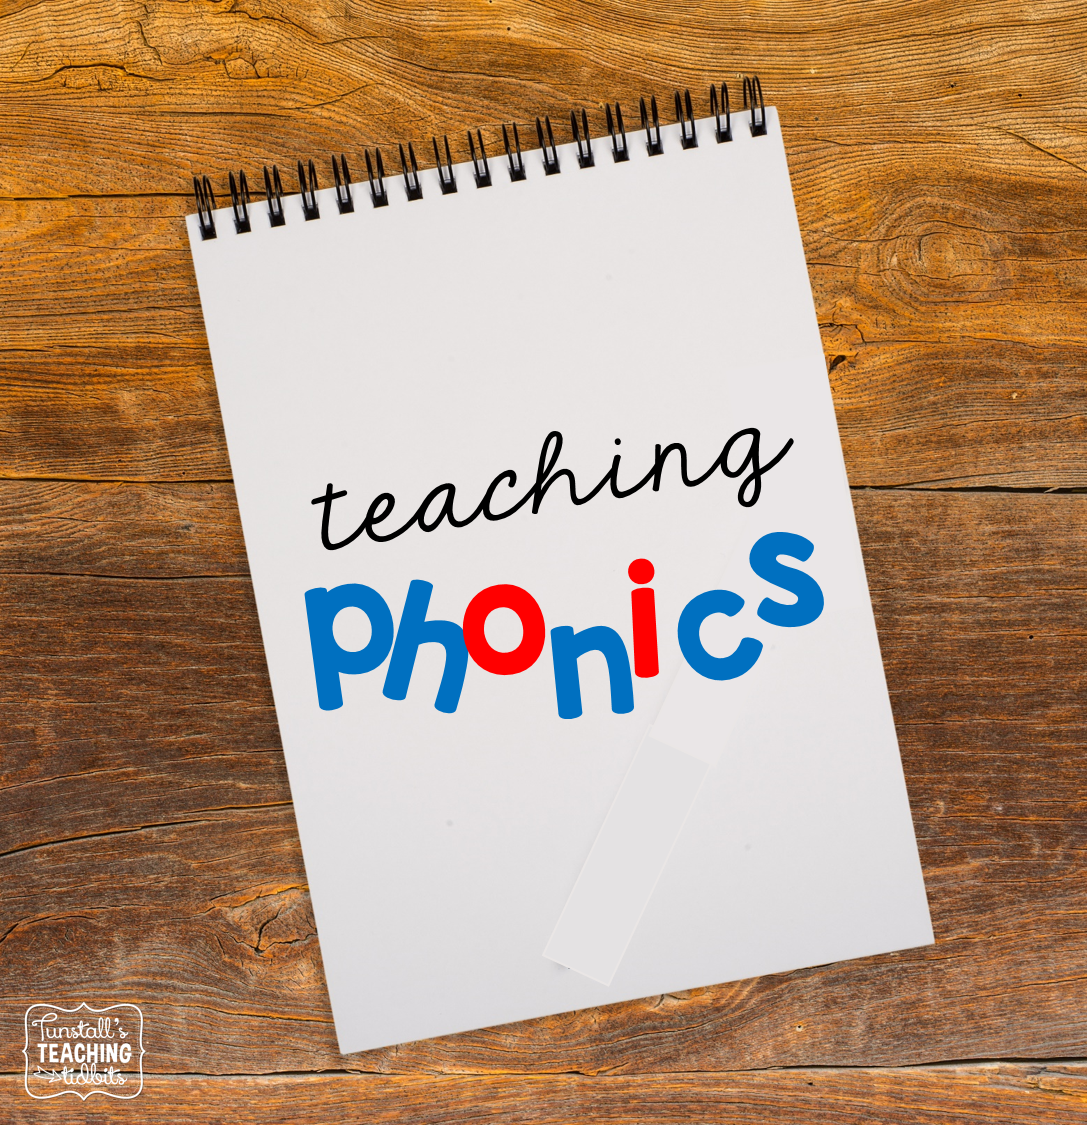 small resolution of Lesson Planning Ideas: Teaching Phonics - Tunstall's Teaching Tidbits